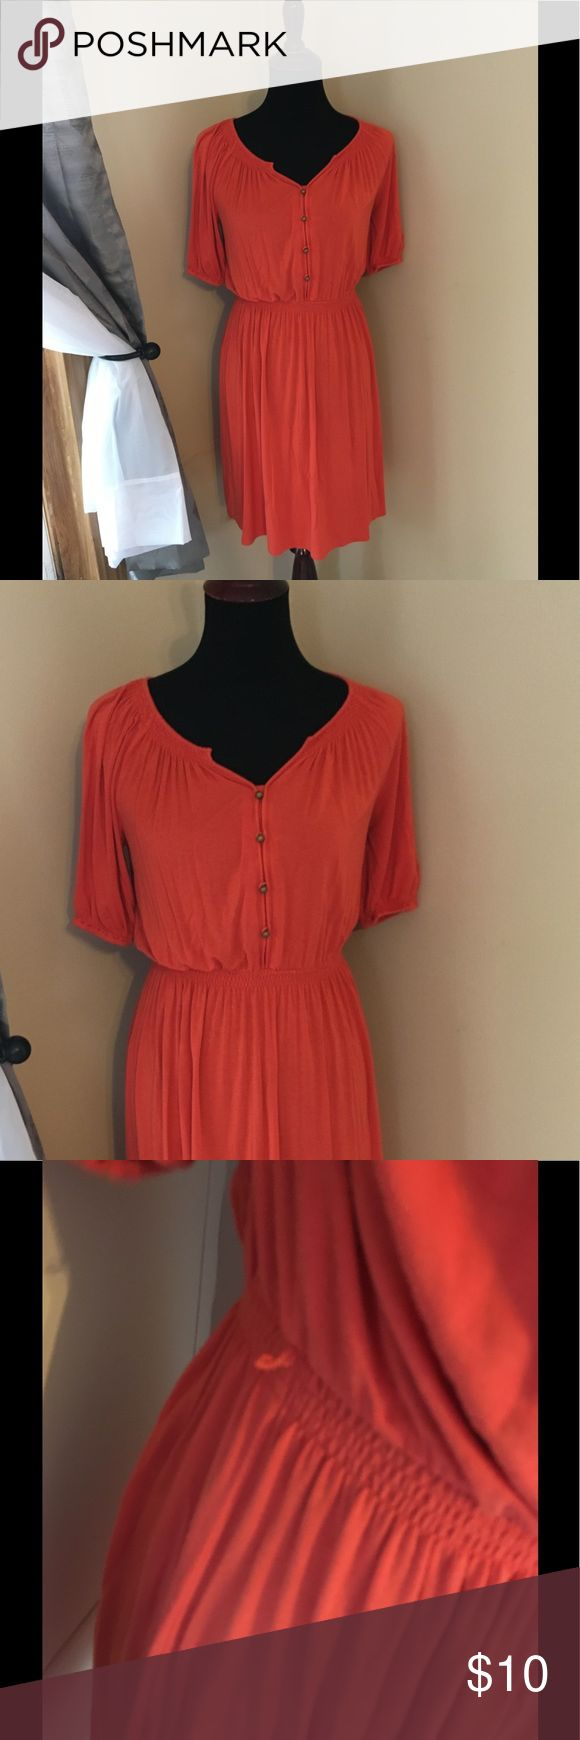 Ann Taylor Loft Fall Orange Dress Size 4 Petite Tshirt Knit dress by Ann Taylor Loft.  Autumn orange color.  Elastic cinched waist.  Has string belt loops, no belt included.  Size 4 petite. Dress is 35 inches long.  Good condition.  Important:   All items are freshly laundered as applicable prior to shipping (new items and shoes excluded).  Not all my items are from pet/smoke free homes.  Price is reduced to reflect this!   Thank you for looking! LOFT Dresses Midi